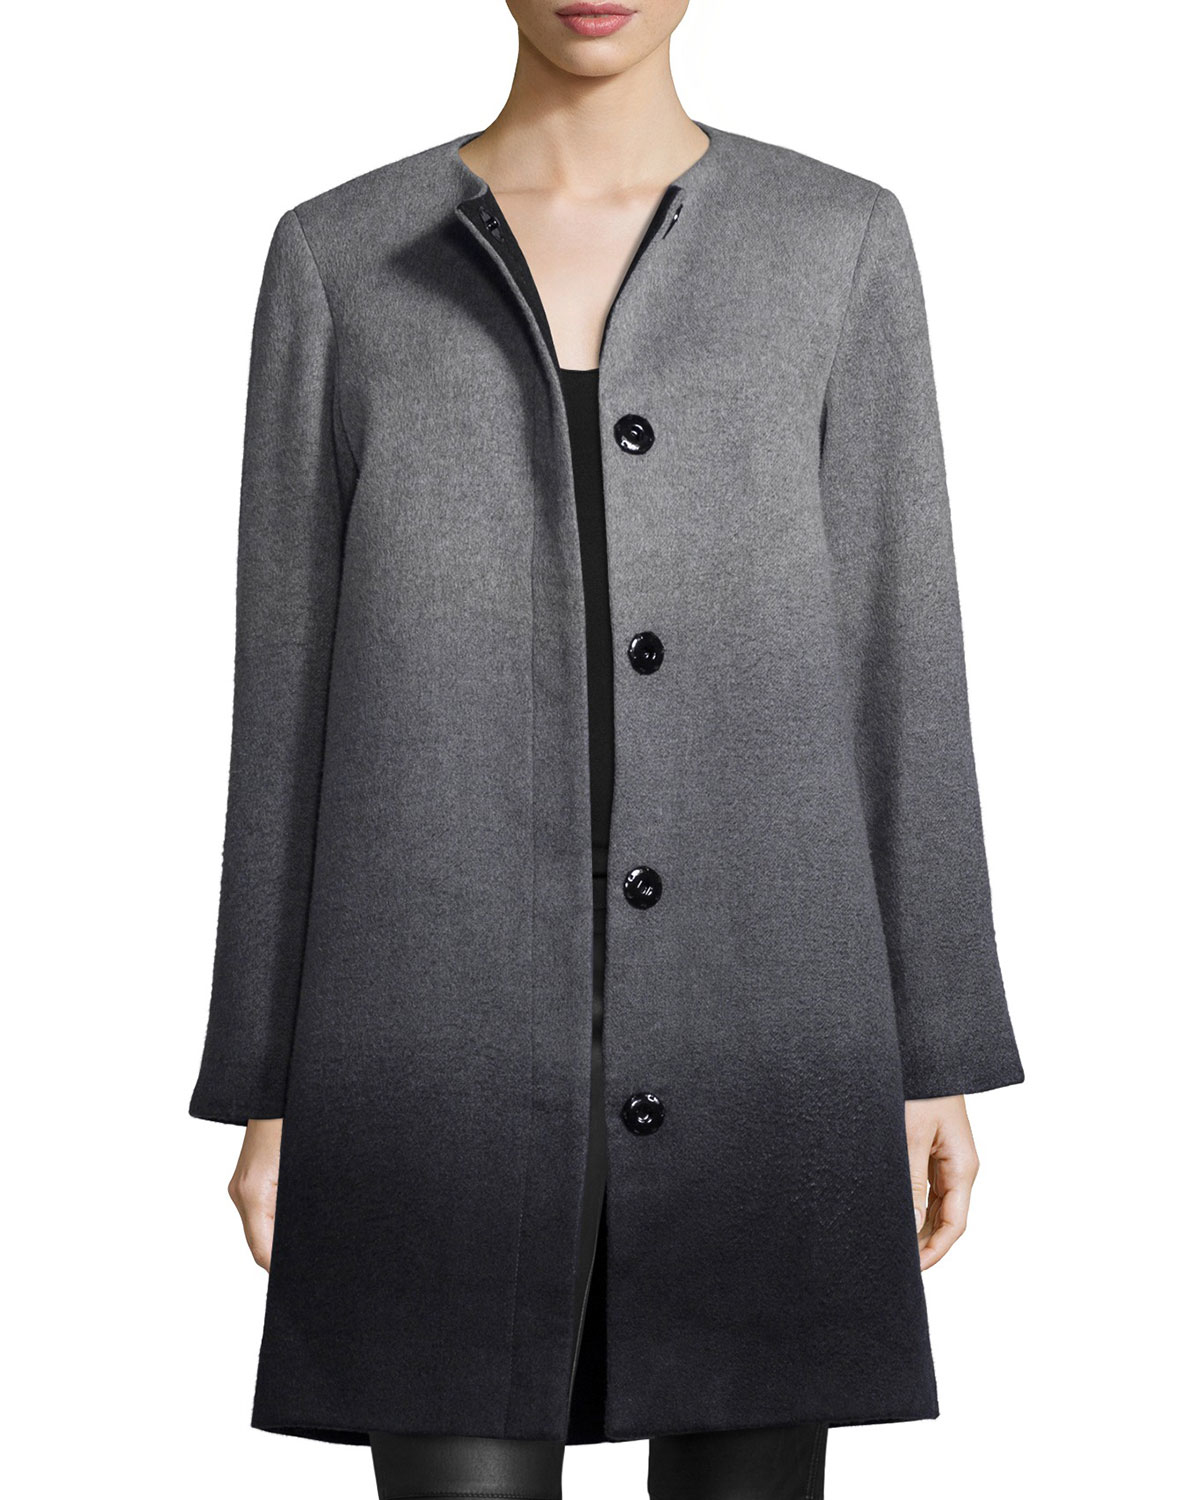 Lyst Sofia Cashmere Wool Cashmere Ombre Coat In Gray